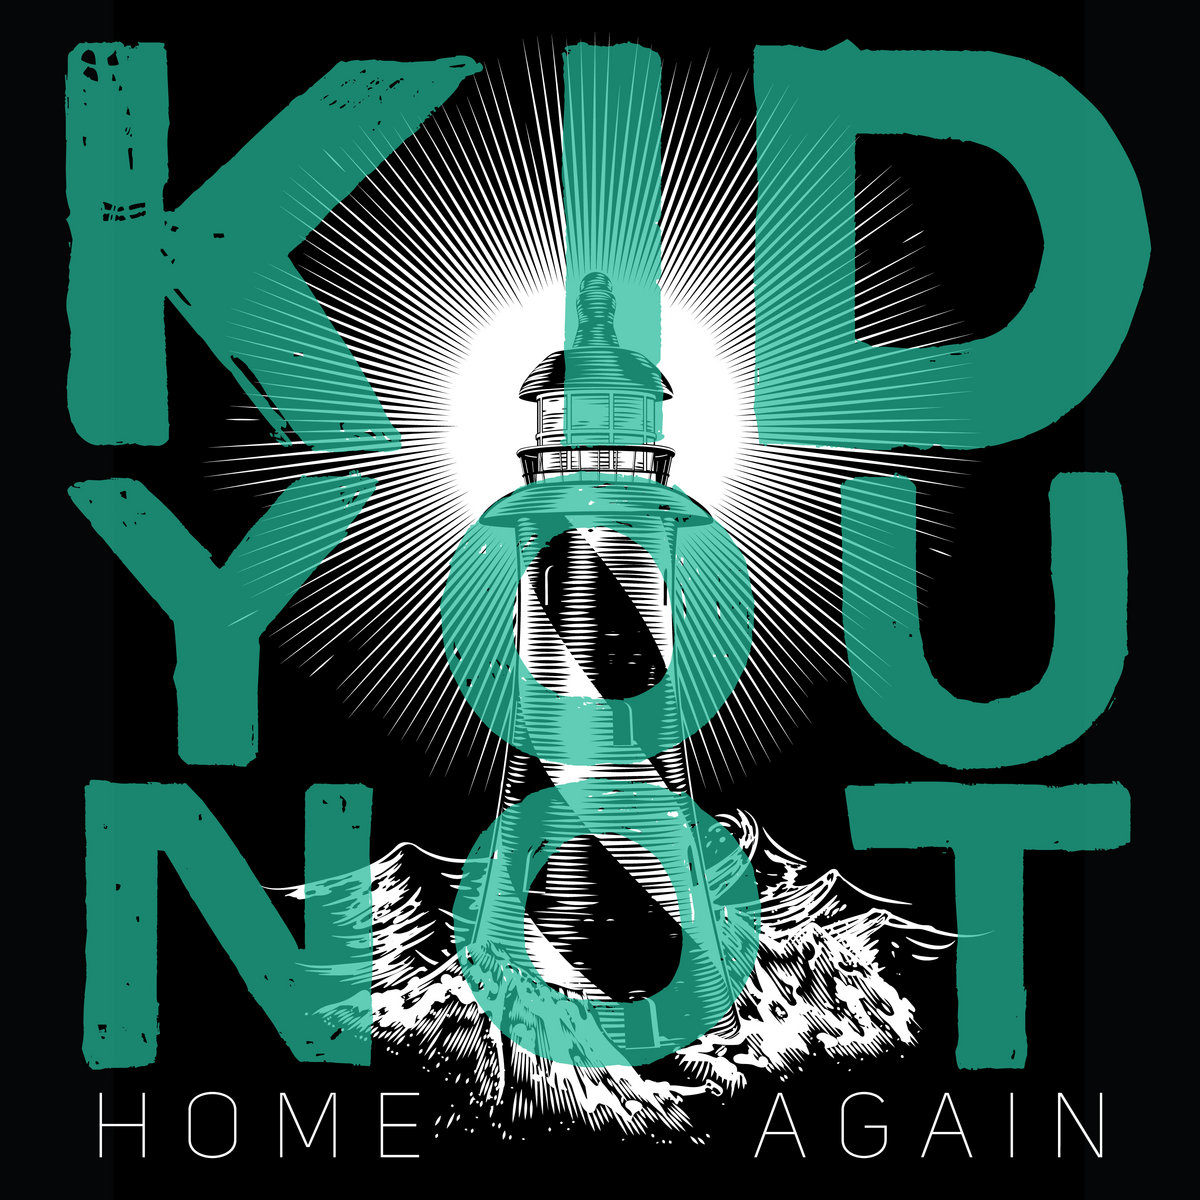 Home Again | Deep Elm Records on home checklist, home man, home help, home nice, home now, home voices, home boy, home watch services, home from college, home soon, home well, home red, home finally, home father, home heat, home still, home beautiful, home small, home one, home from school,